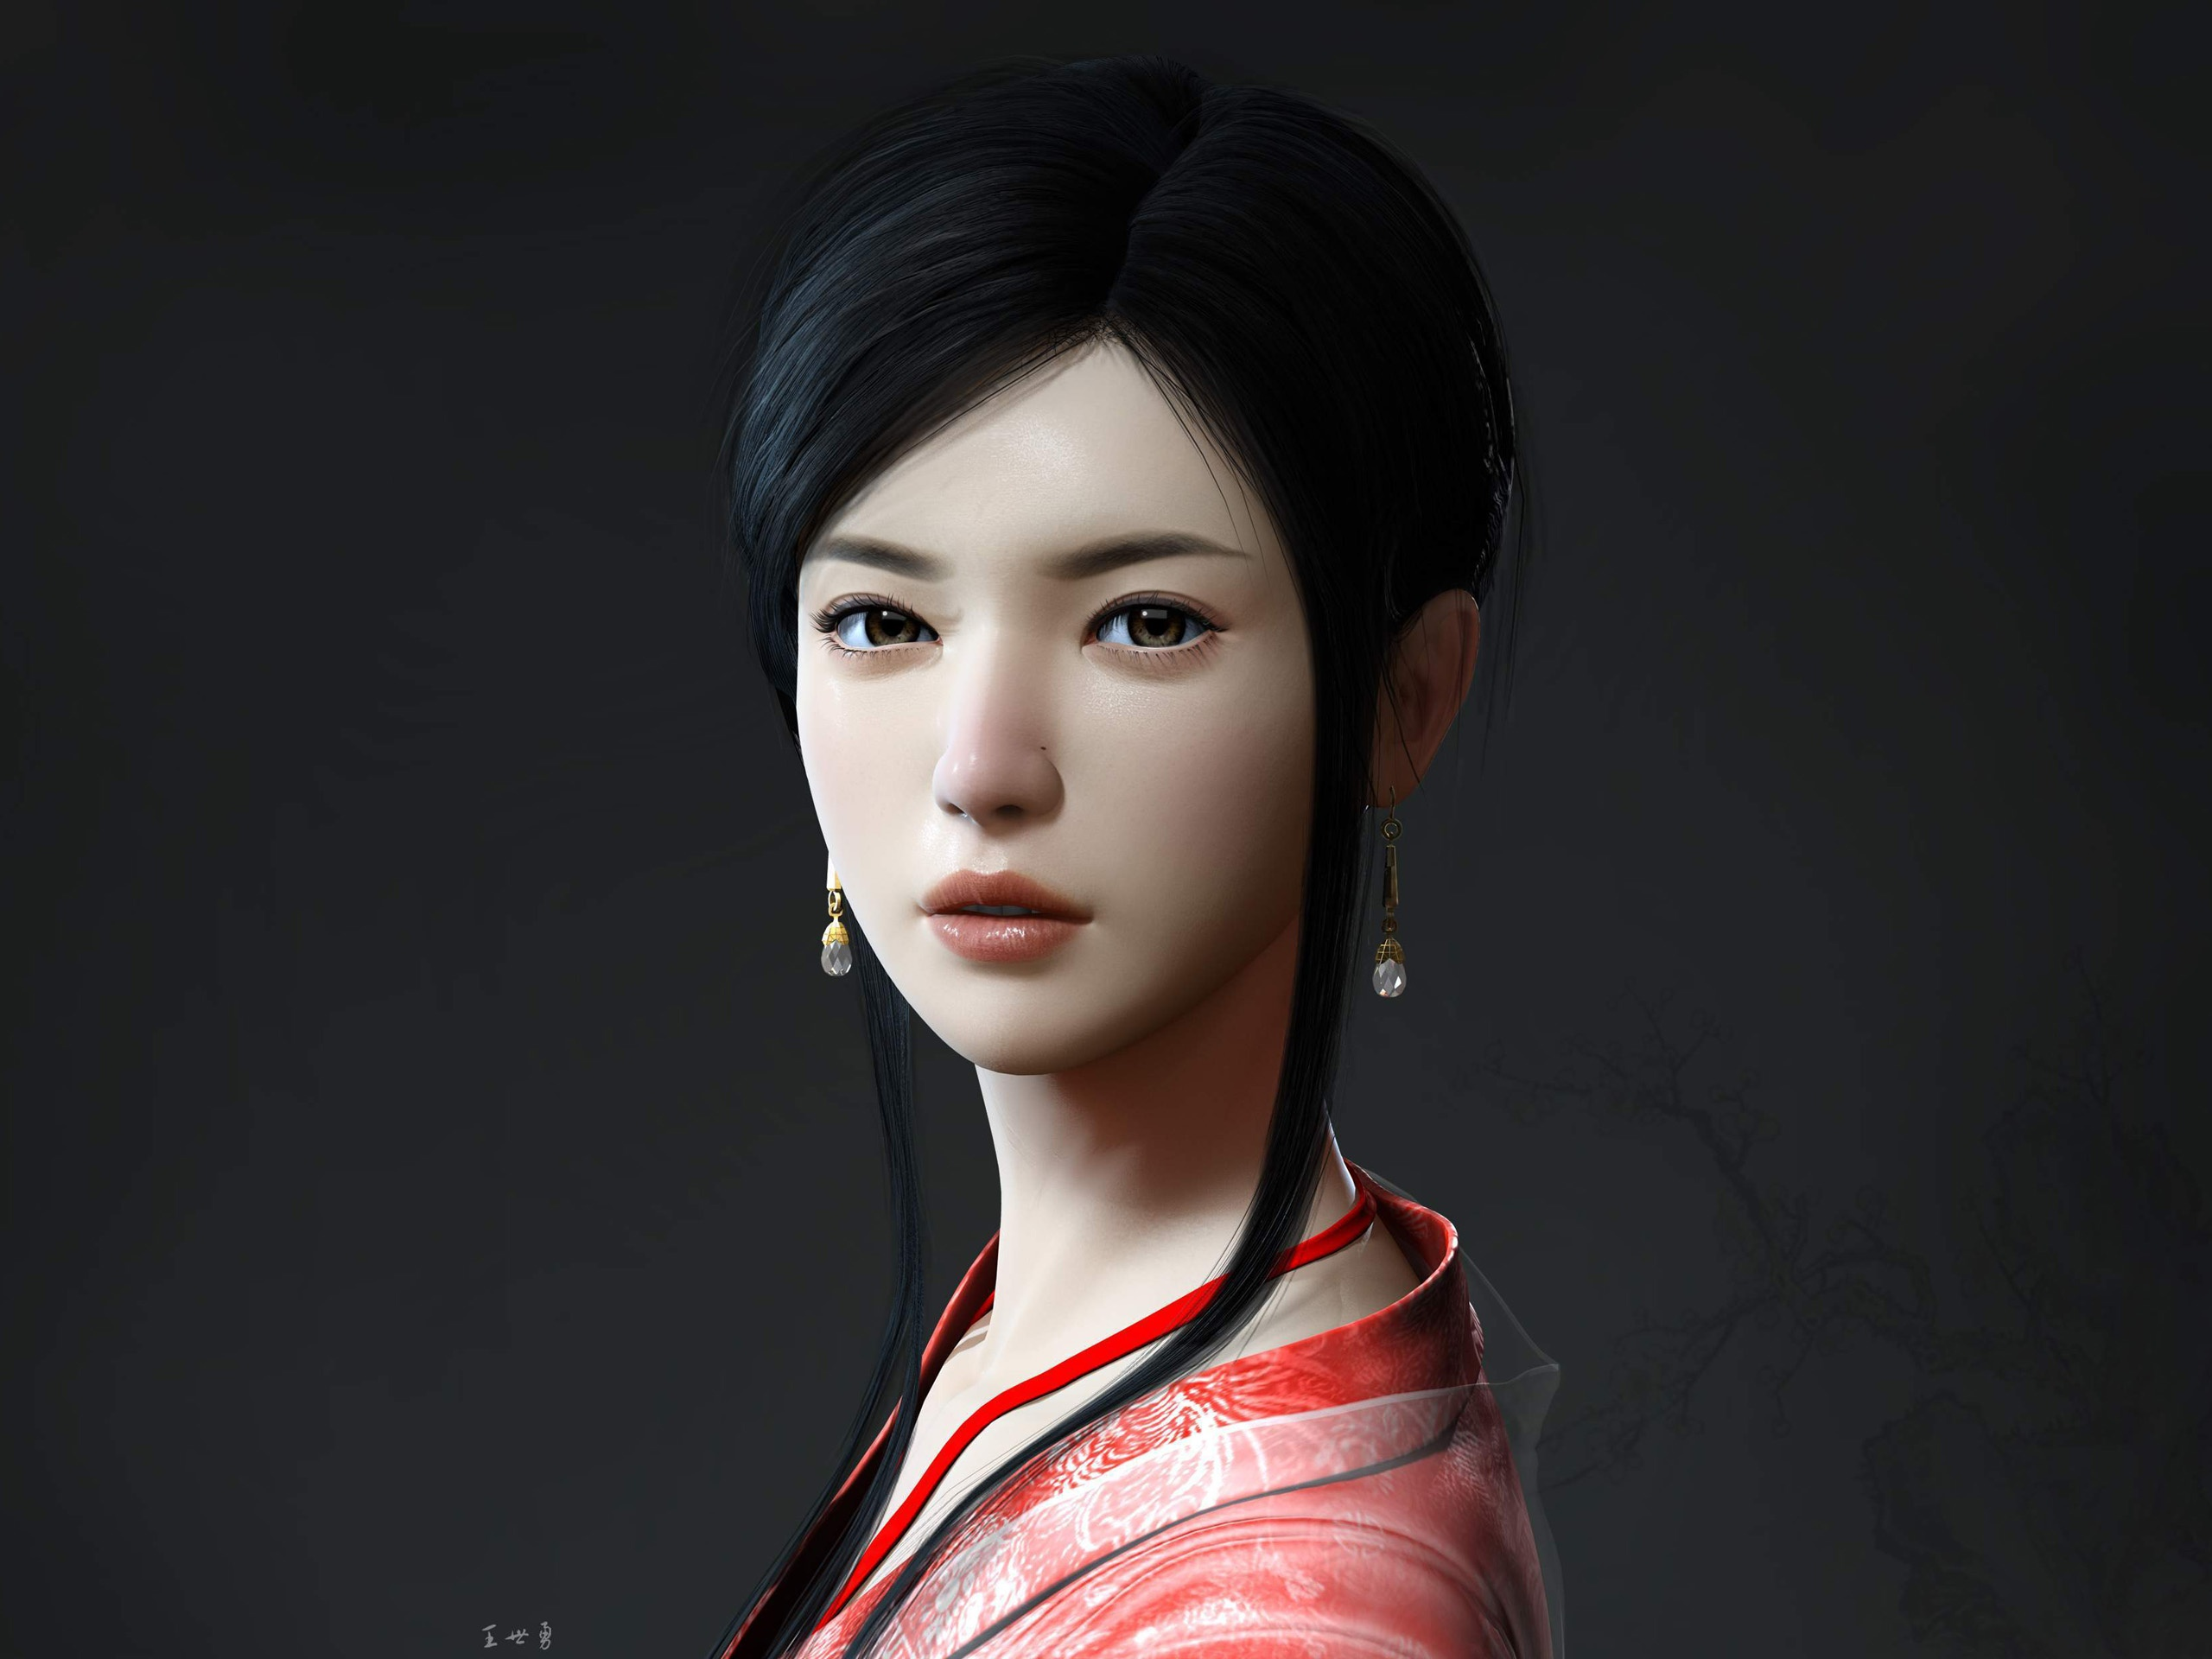 Wallpaper Beautiful Girl In Ancient China - Chinese Face 3d Model - HD Wallpaper